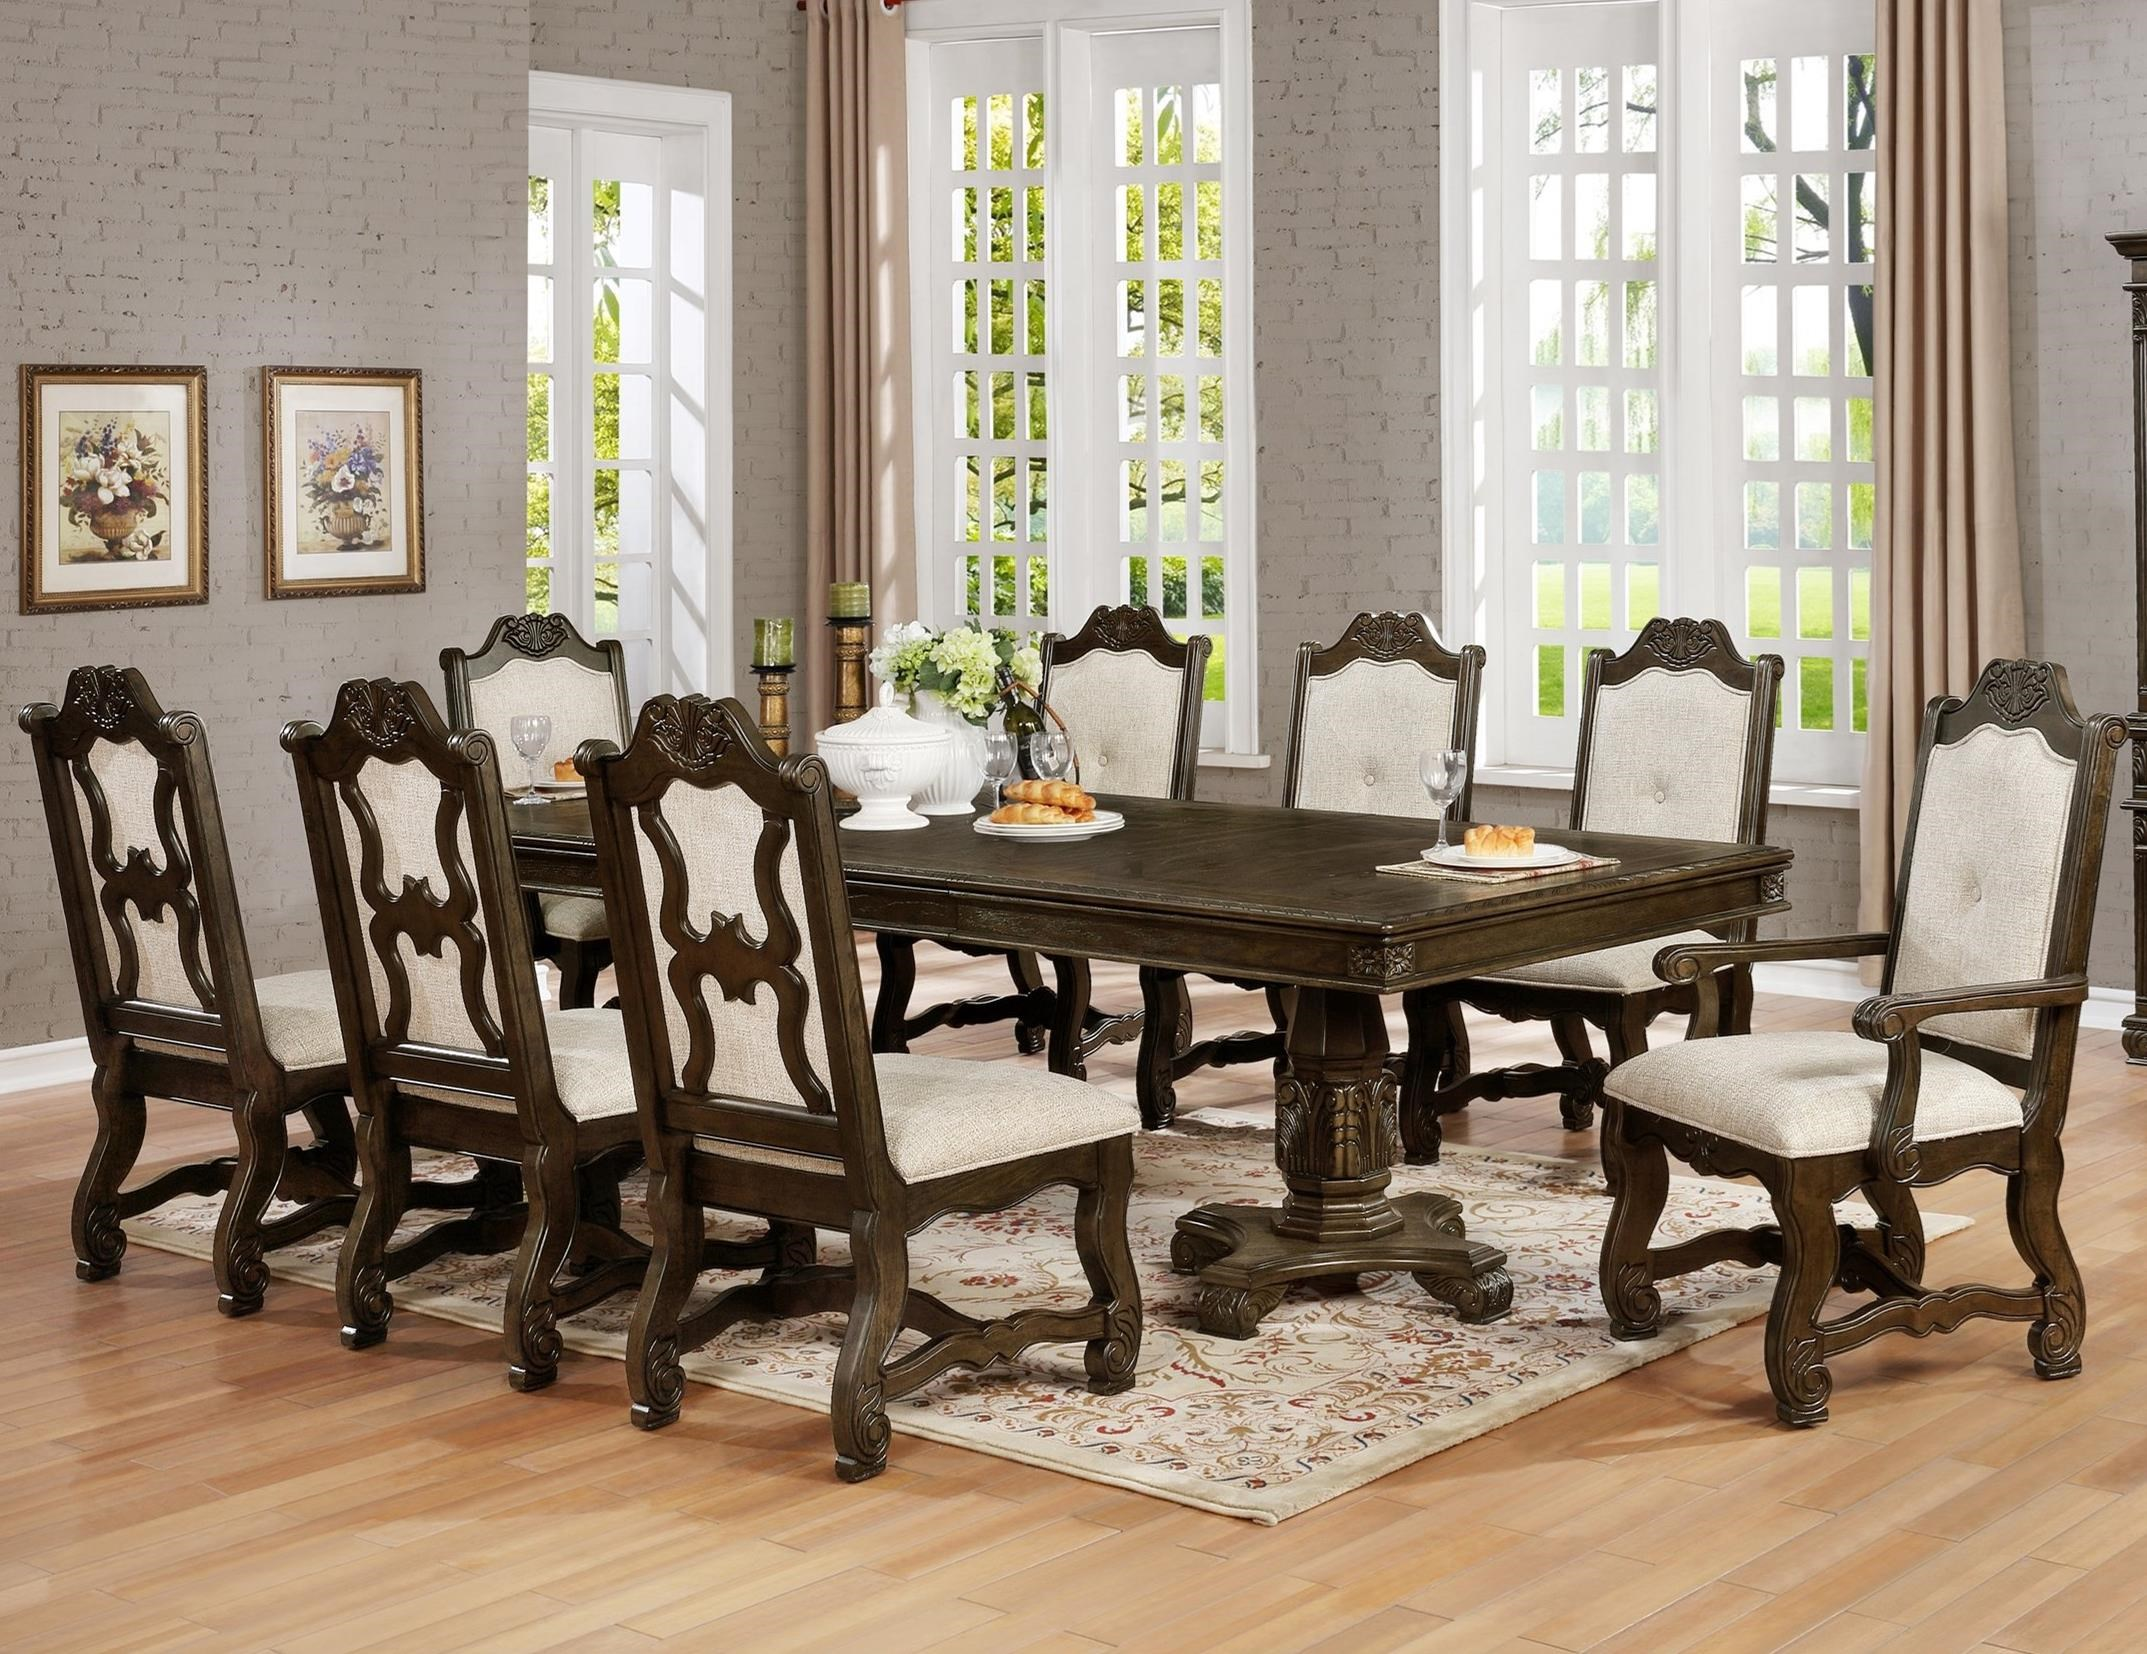 Crown Mark Pierre 9 Pc Dining Set   Item Number: 2410T 44108 TOP